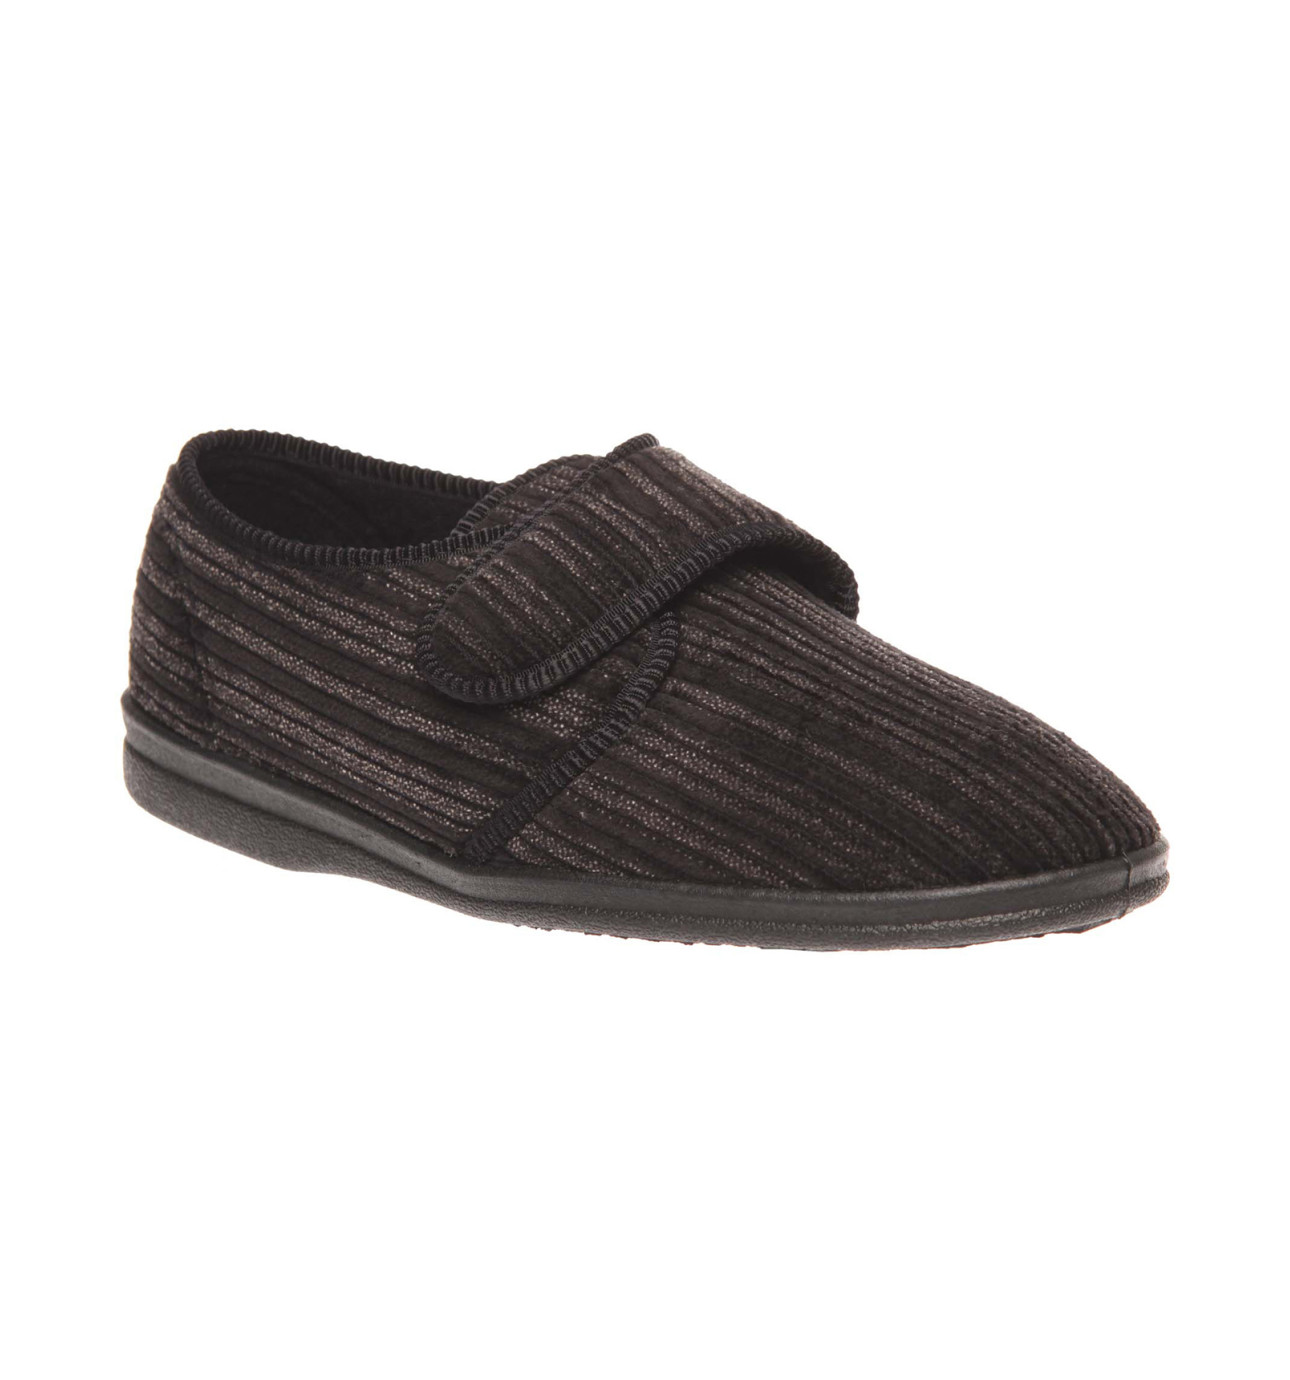 Mens Bedroom Slippers Mens Slippers Shoes Shipping Available David Jones